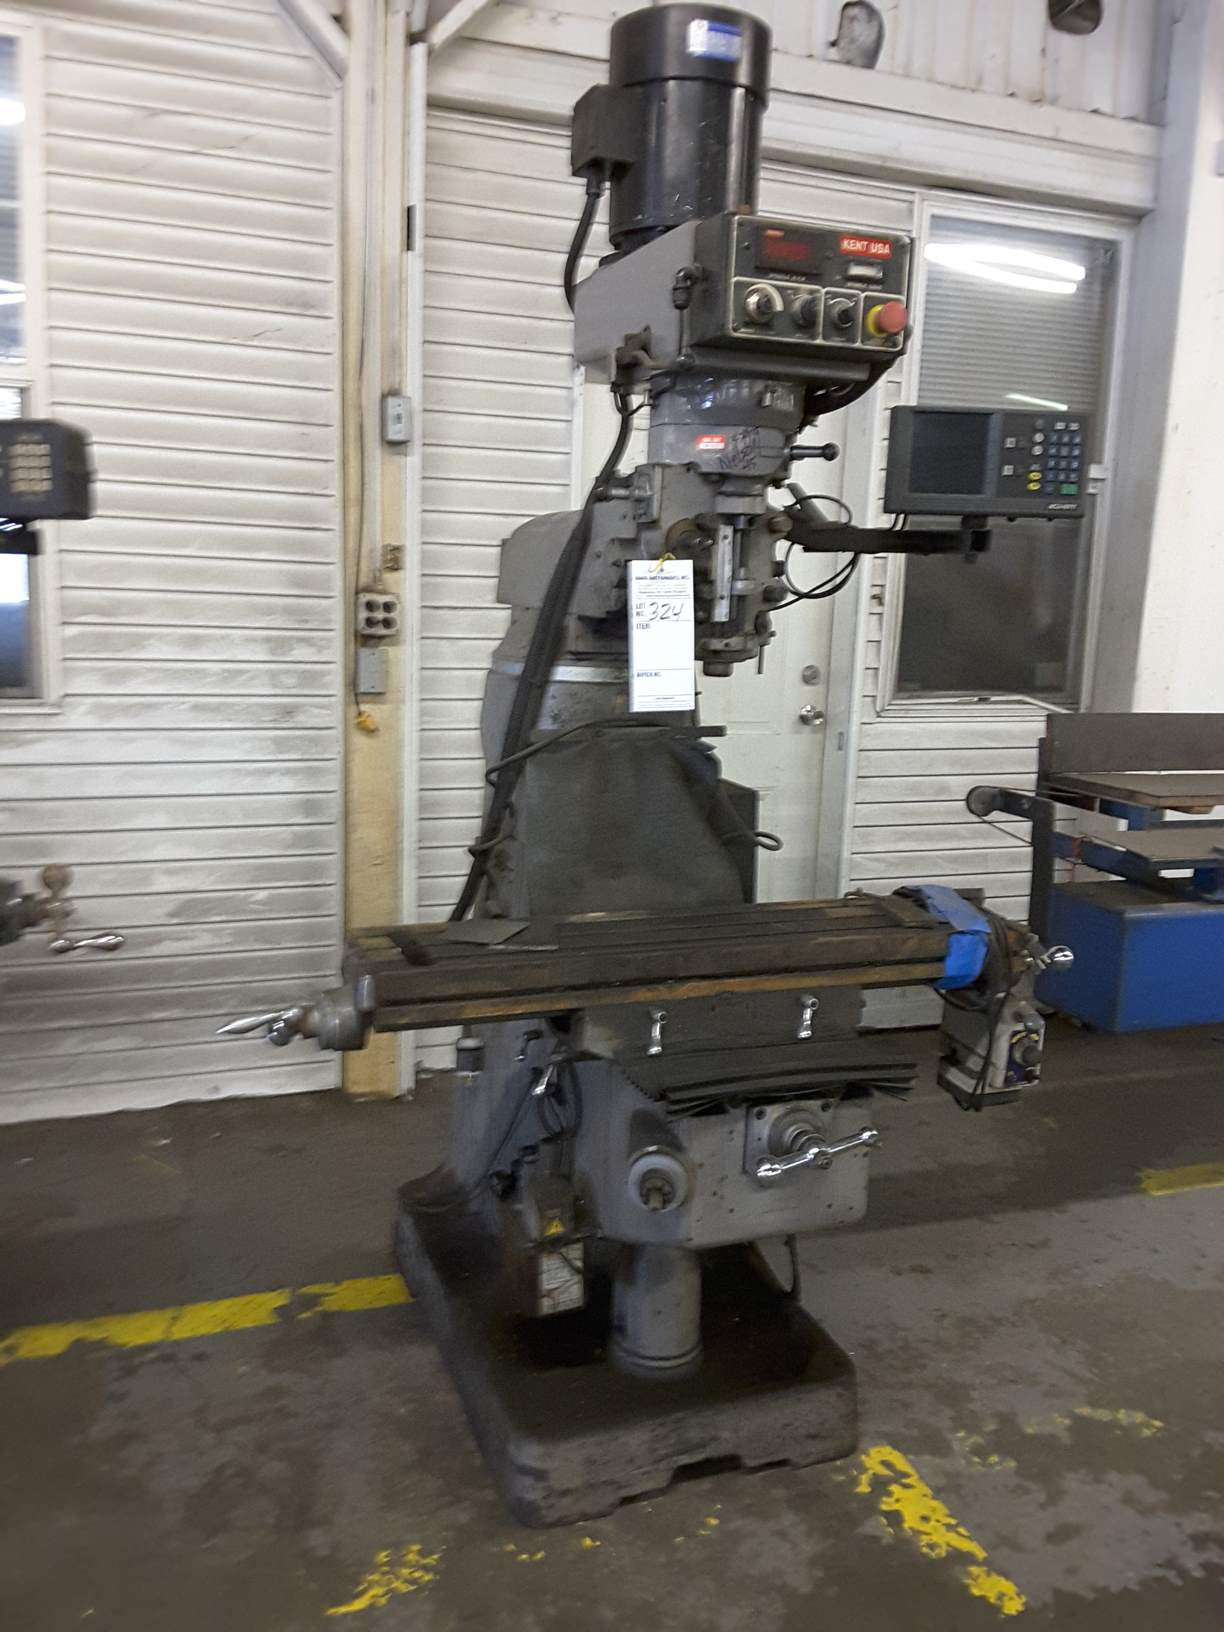 kent milling machine for sale